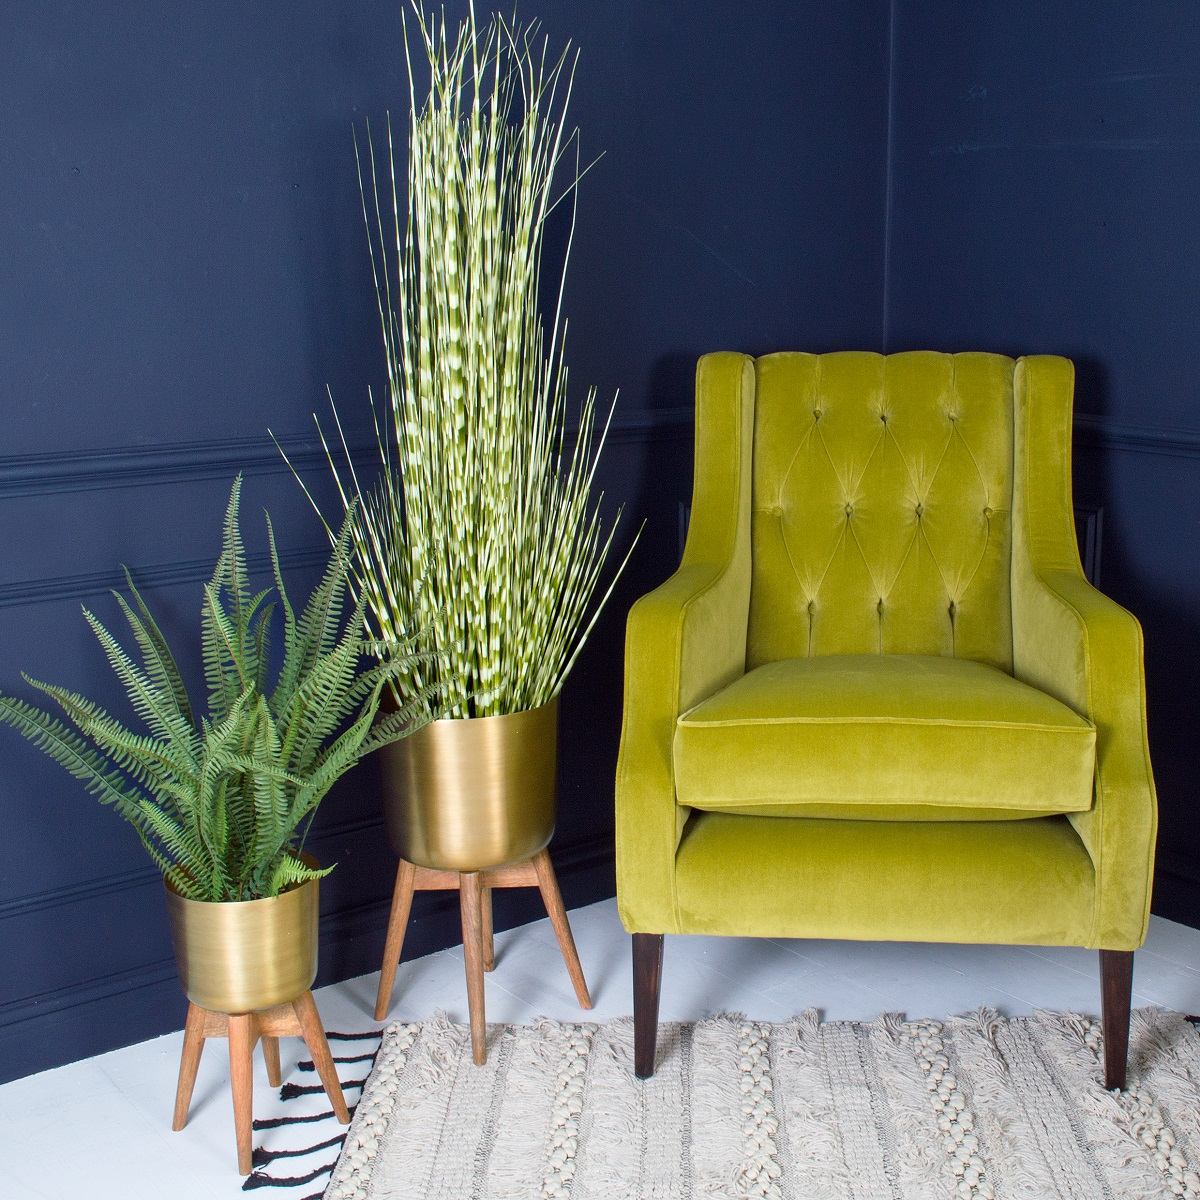 Sumptuous Winged Back Velvet Armchair £1495. Faux Zebra Grass £102. Brass Planter With Stand From £78